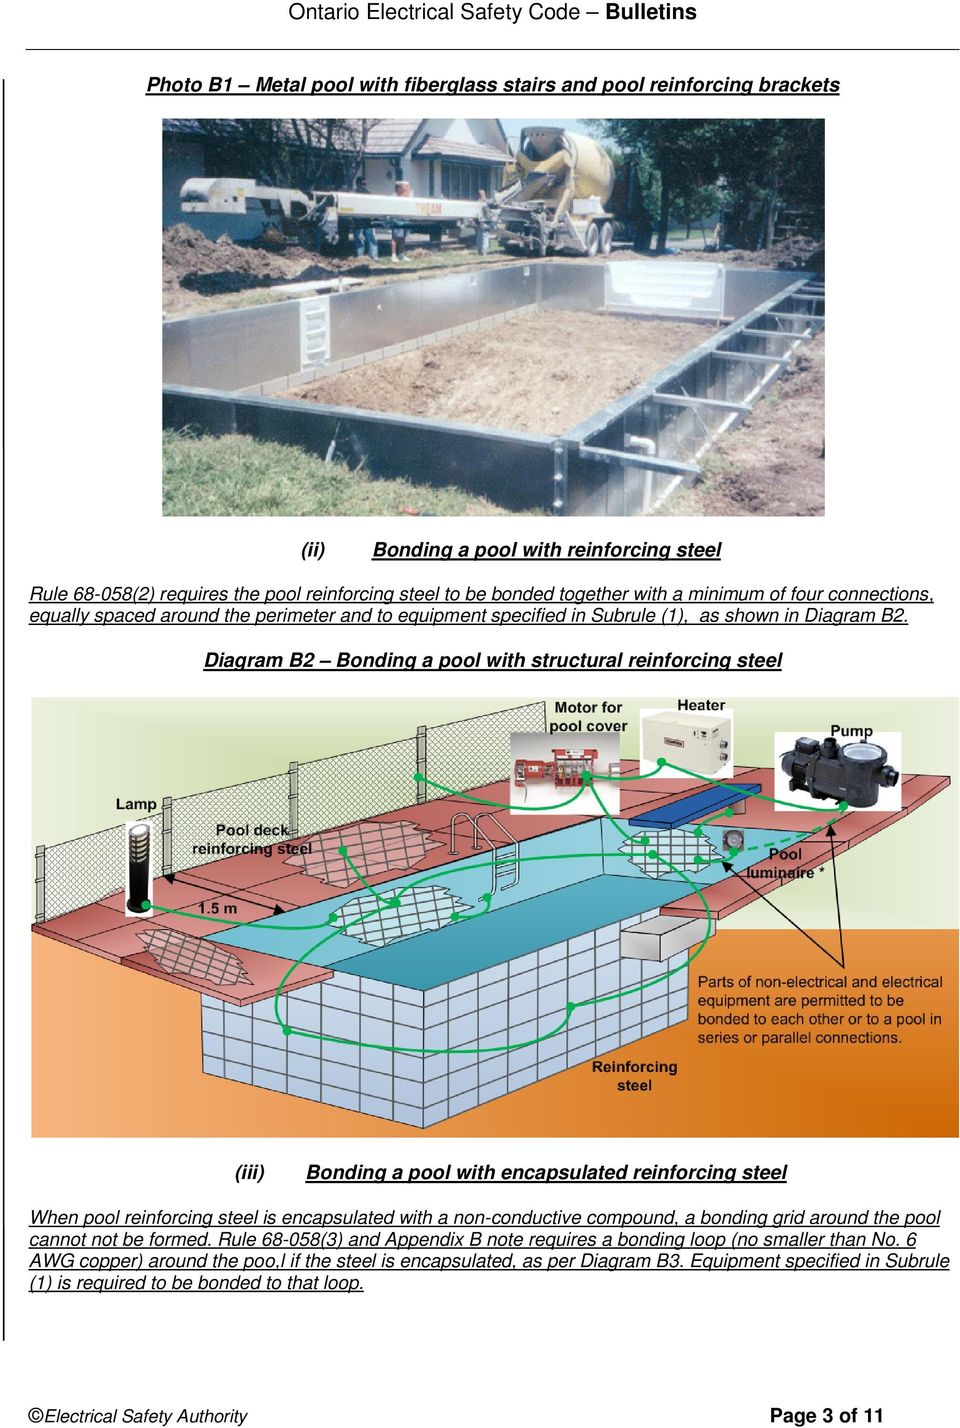 Diagram B2 Bonding a pool with structural reinforcing steel (iii) Bonding a pool with encapsulated reinforcing steel When pool reinforcing steel is encapsulated with a non-conductive compound, a